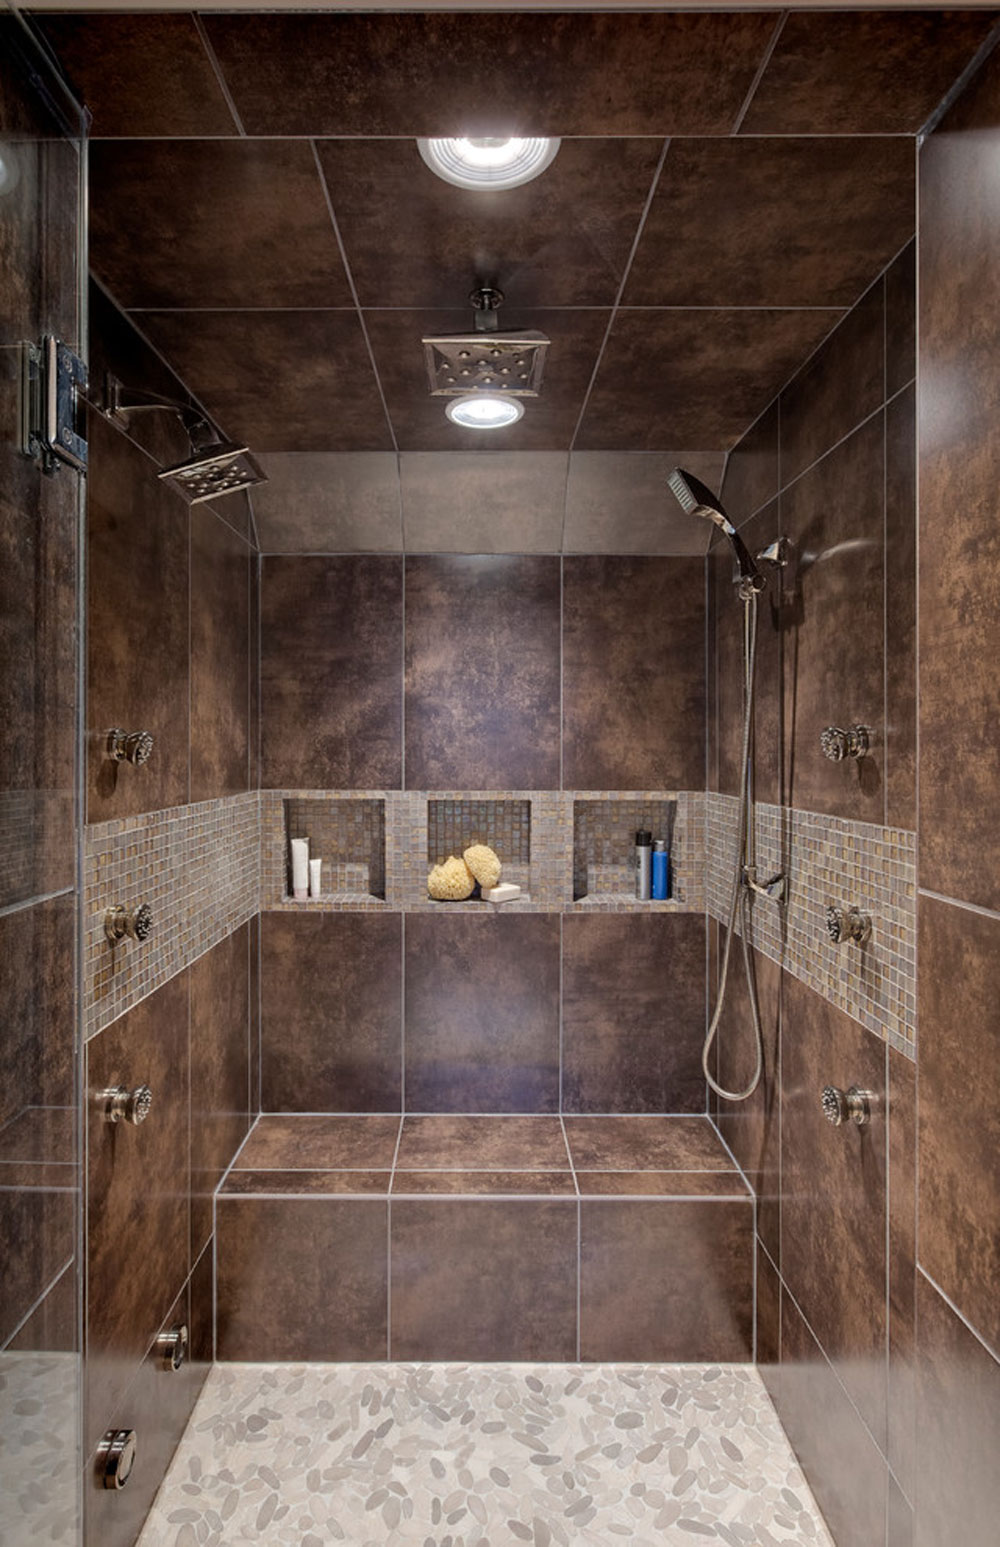 Transitional-Master-Bath-by-Drury-Design shower enclosure ideas and best practices for your bathroom